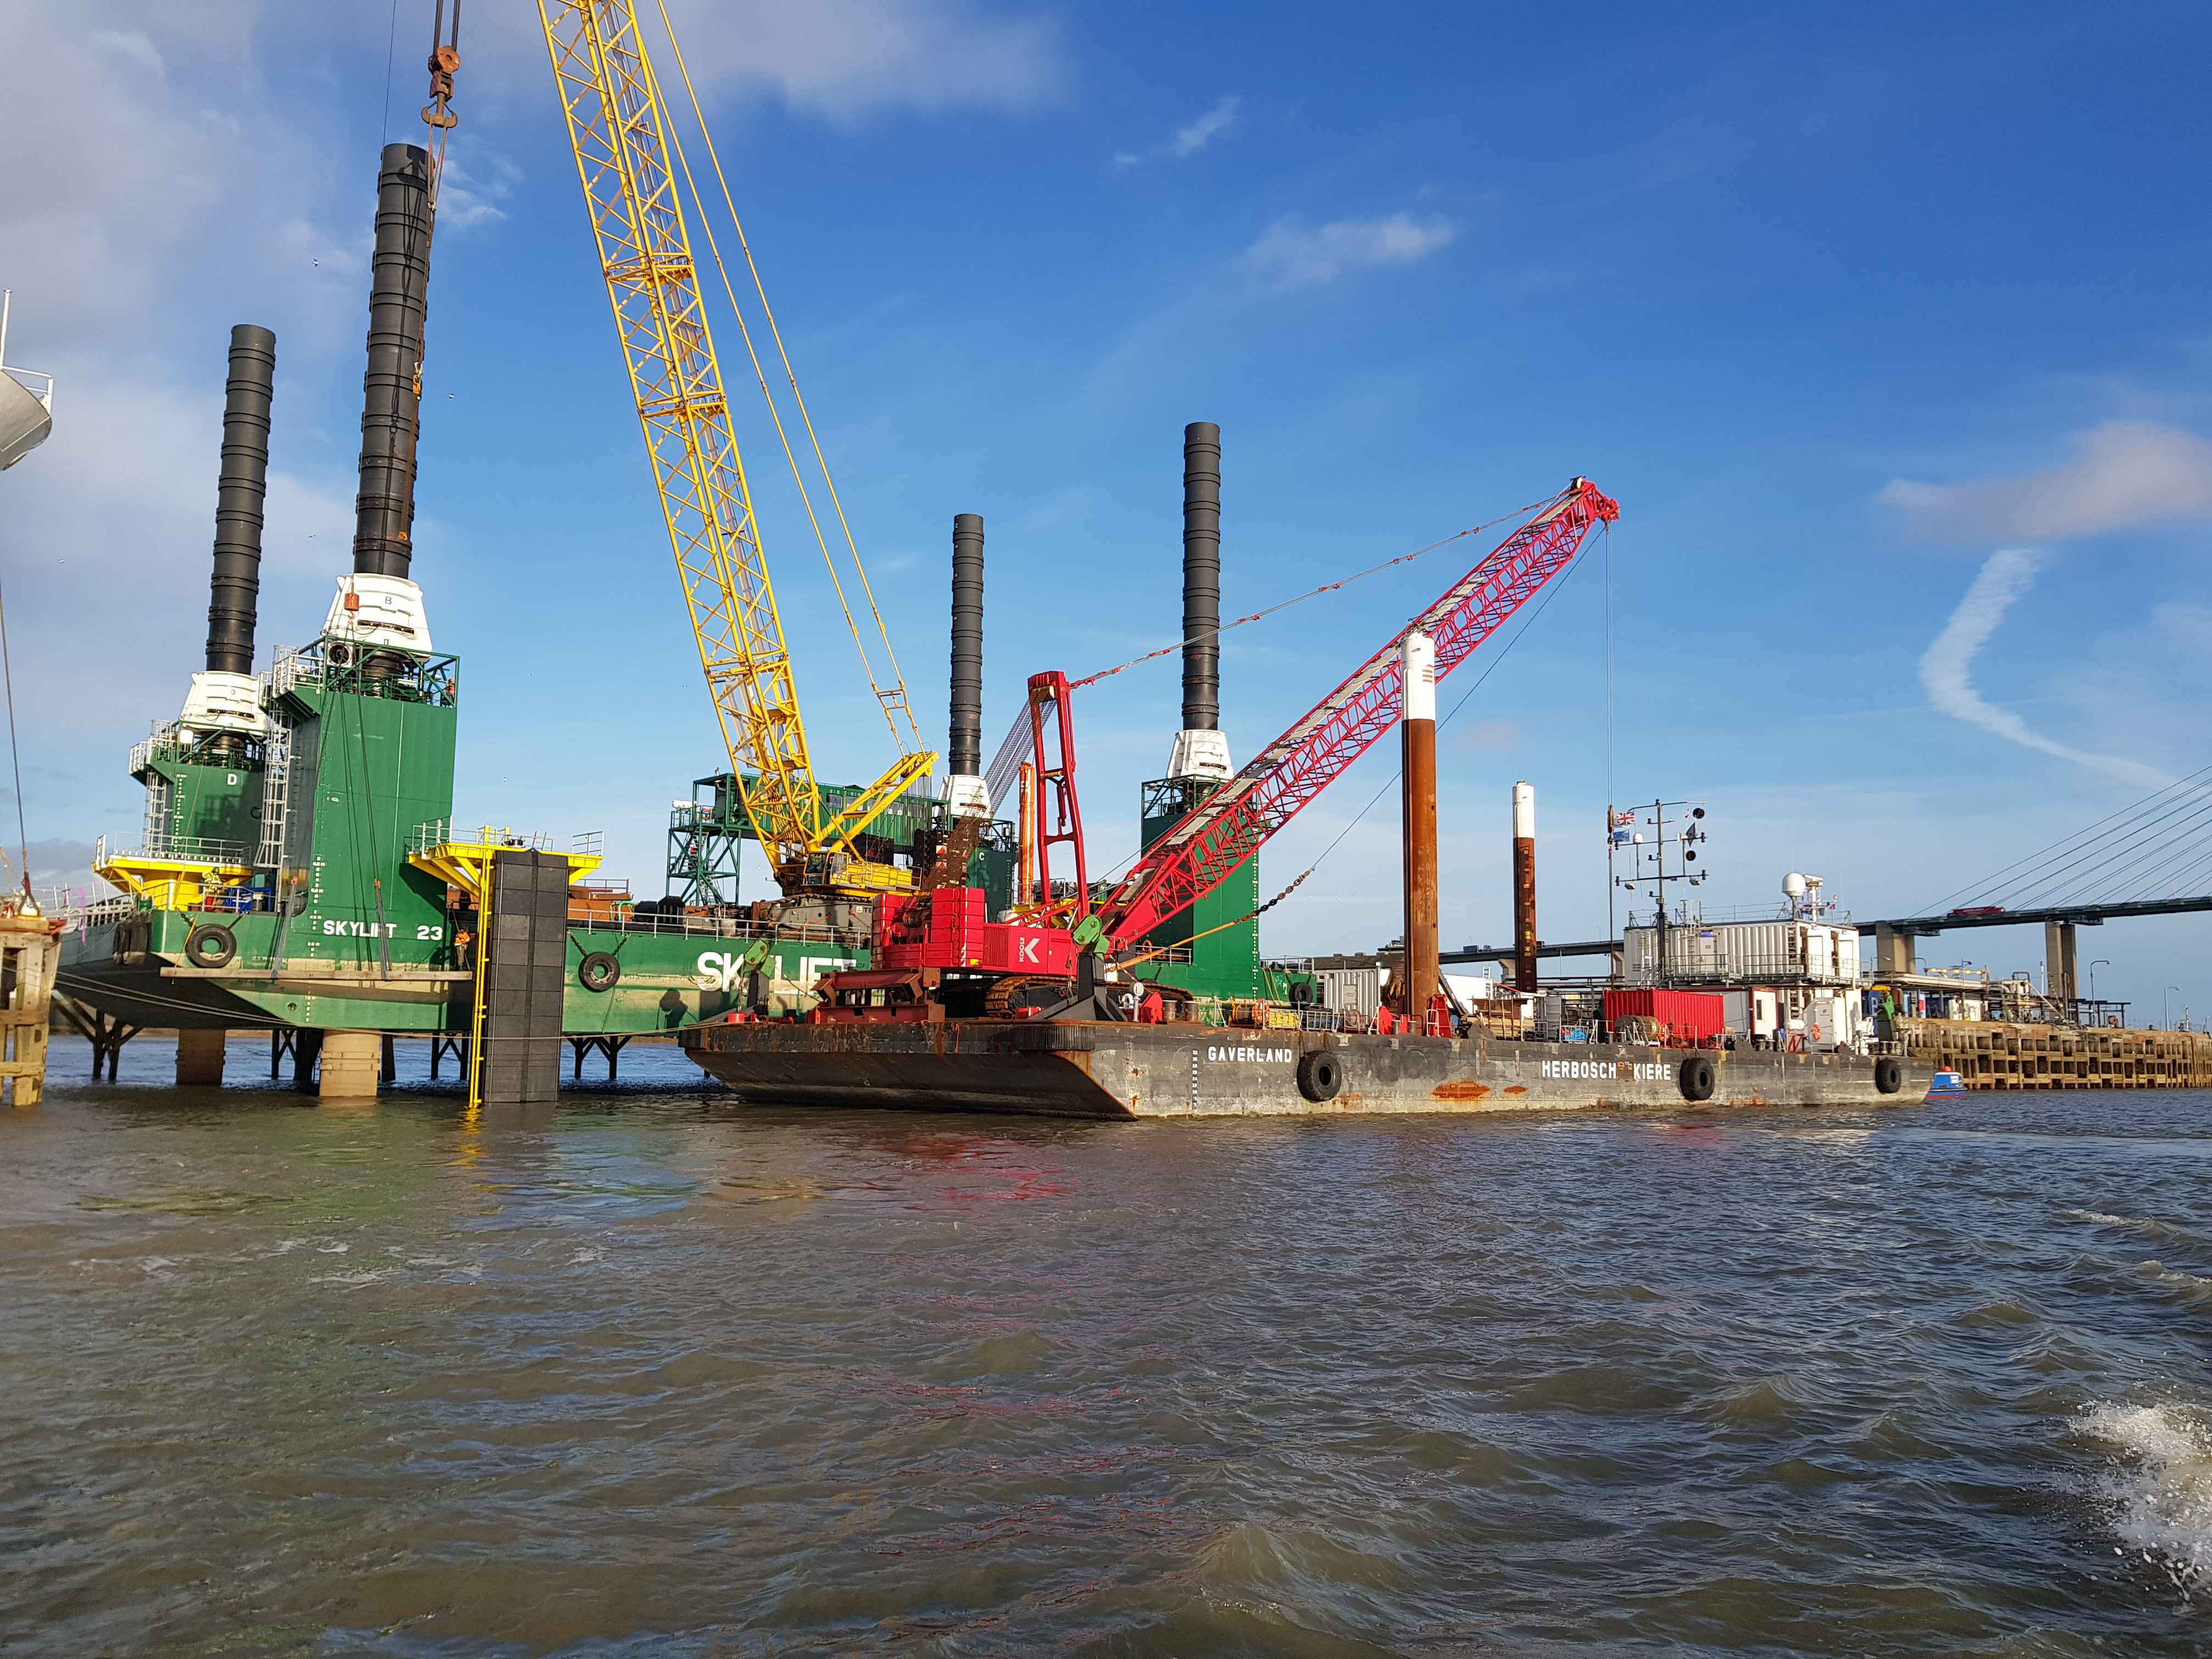 Removal of concrete construction at Purfleet, London